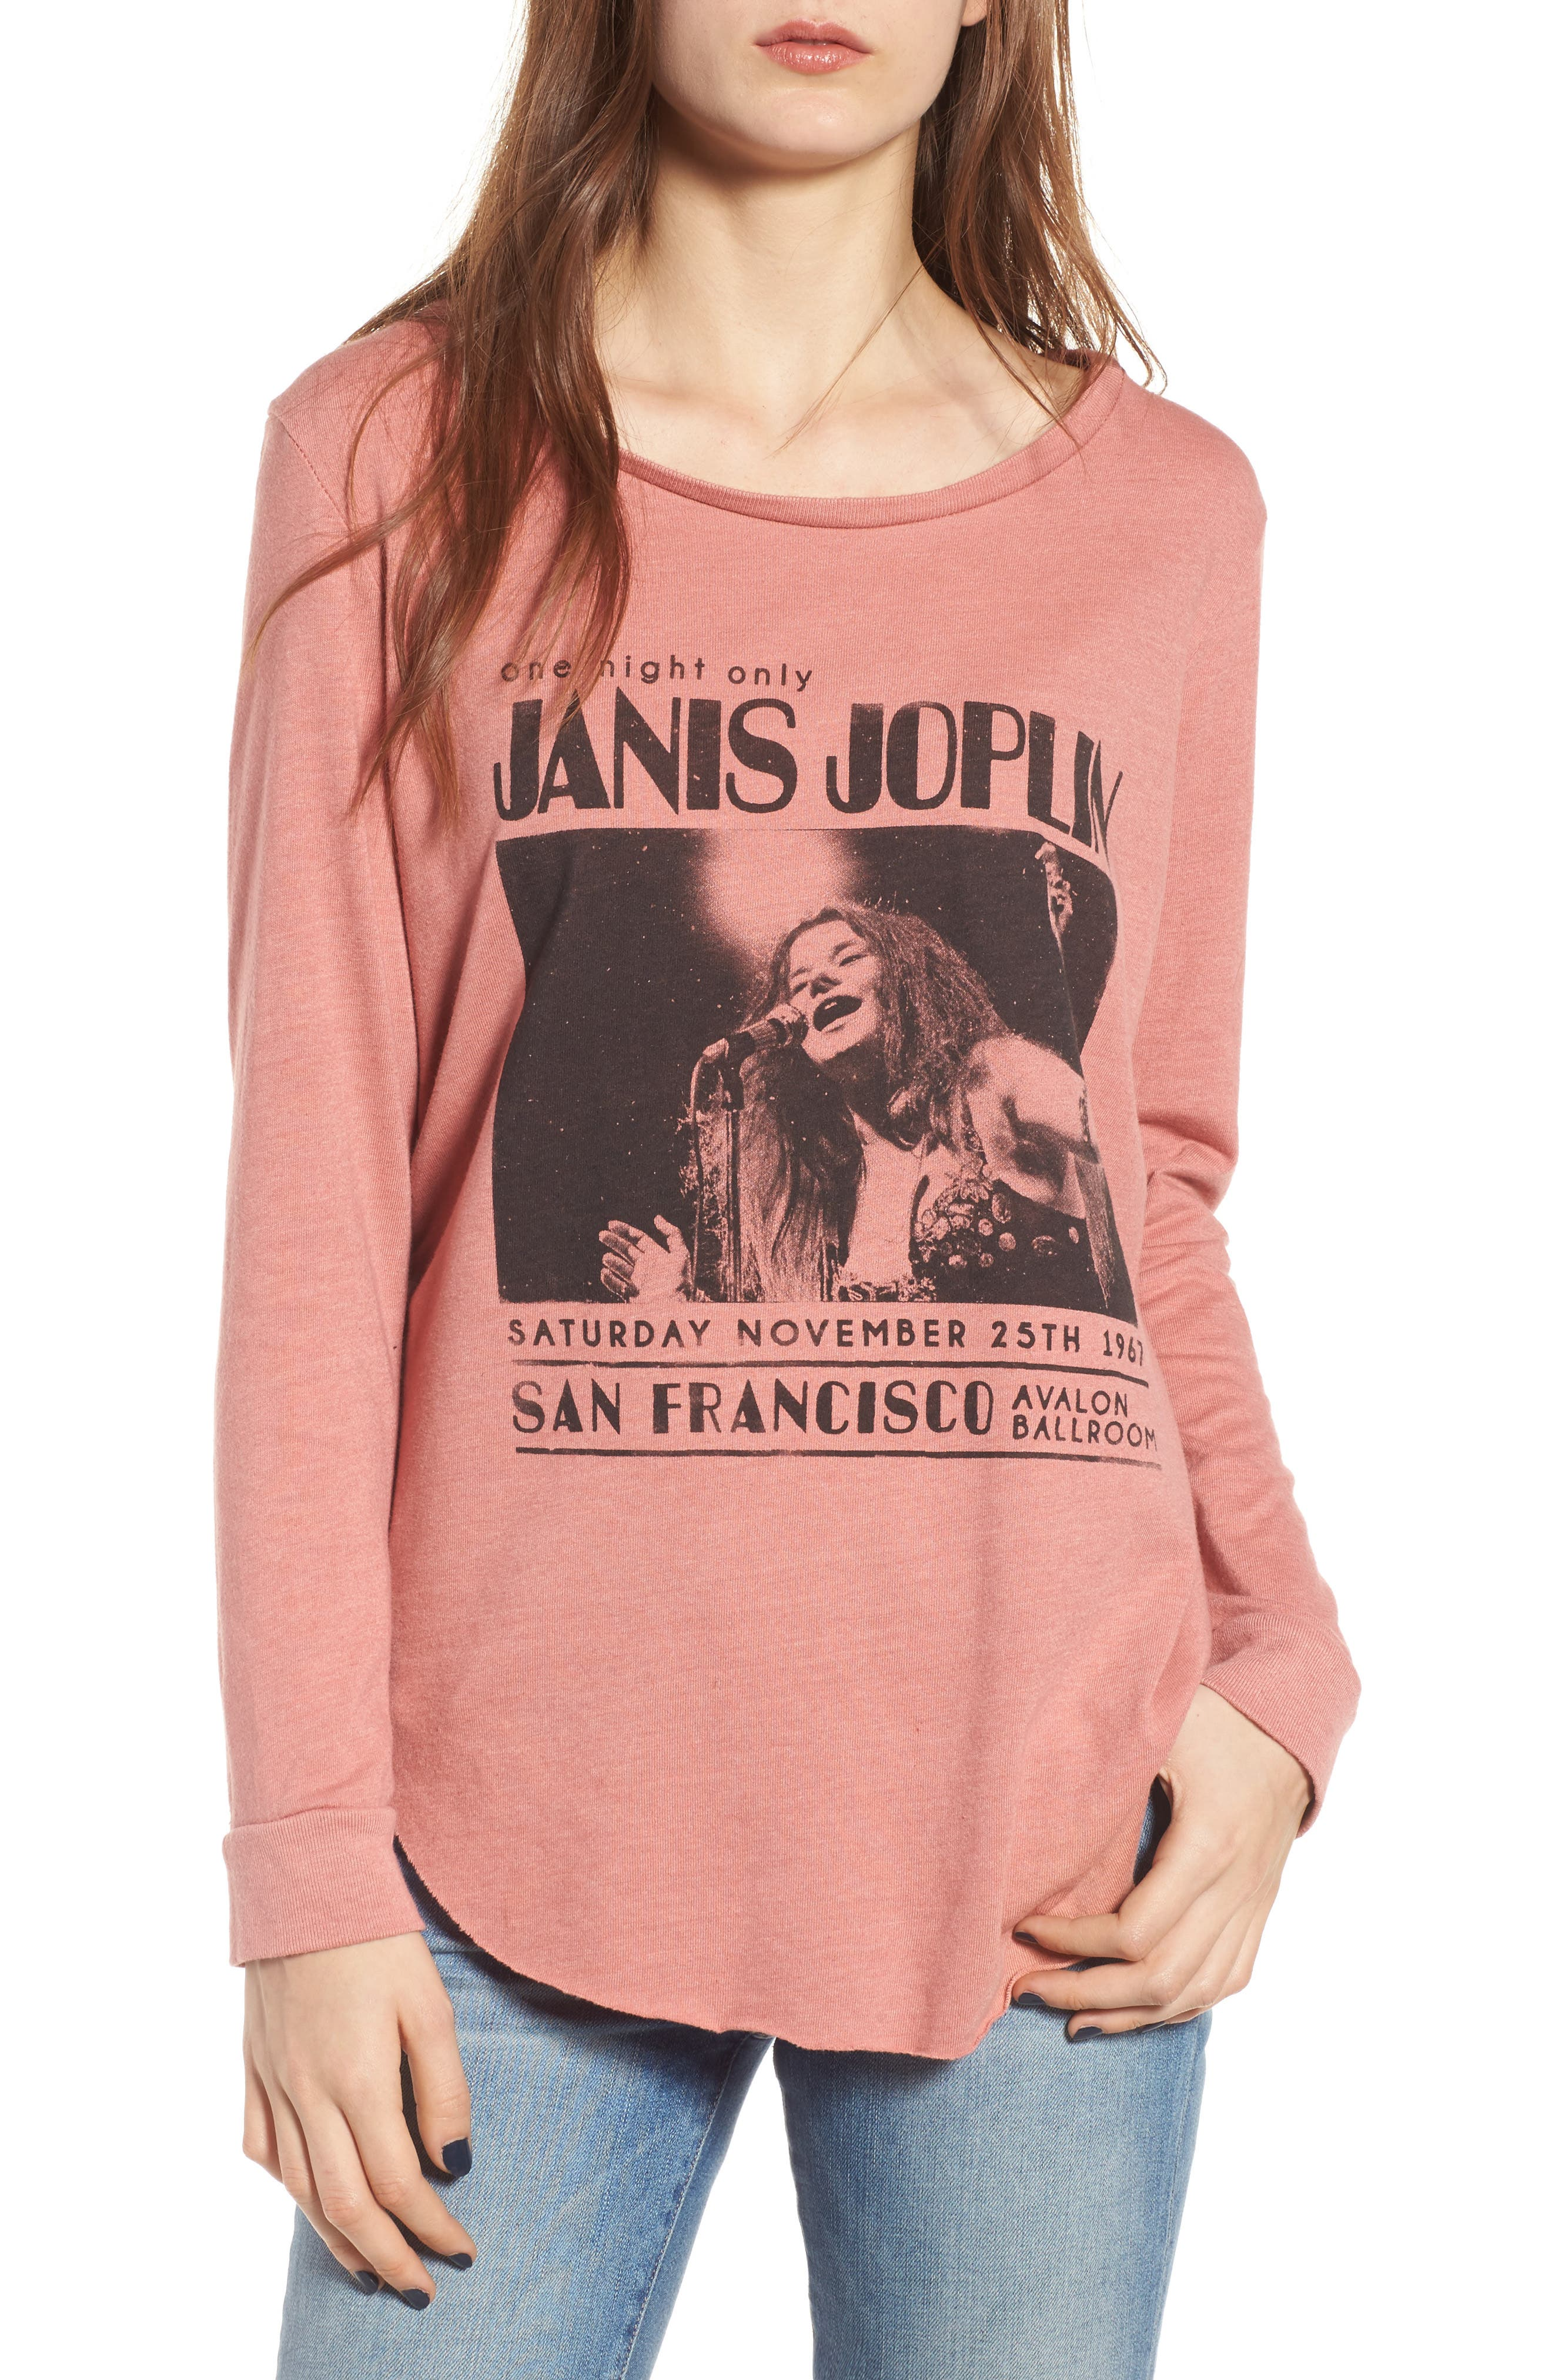 Alternate Image 1 Selected - Junk Food Janis Joplin One Night Only Pullover